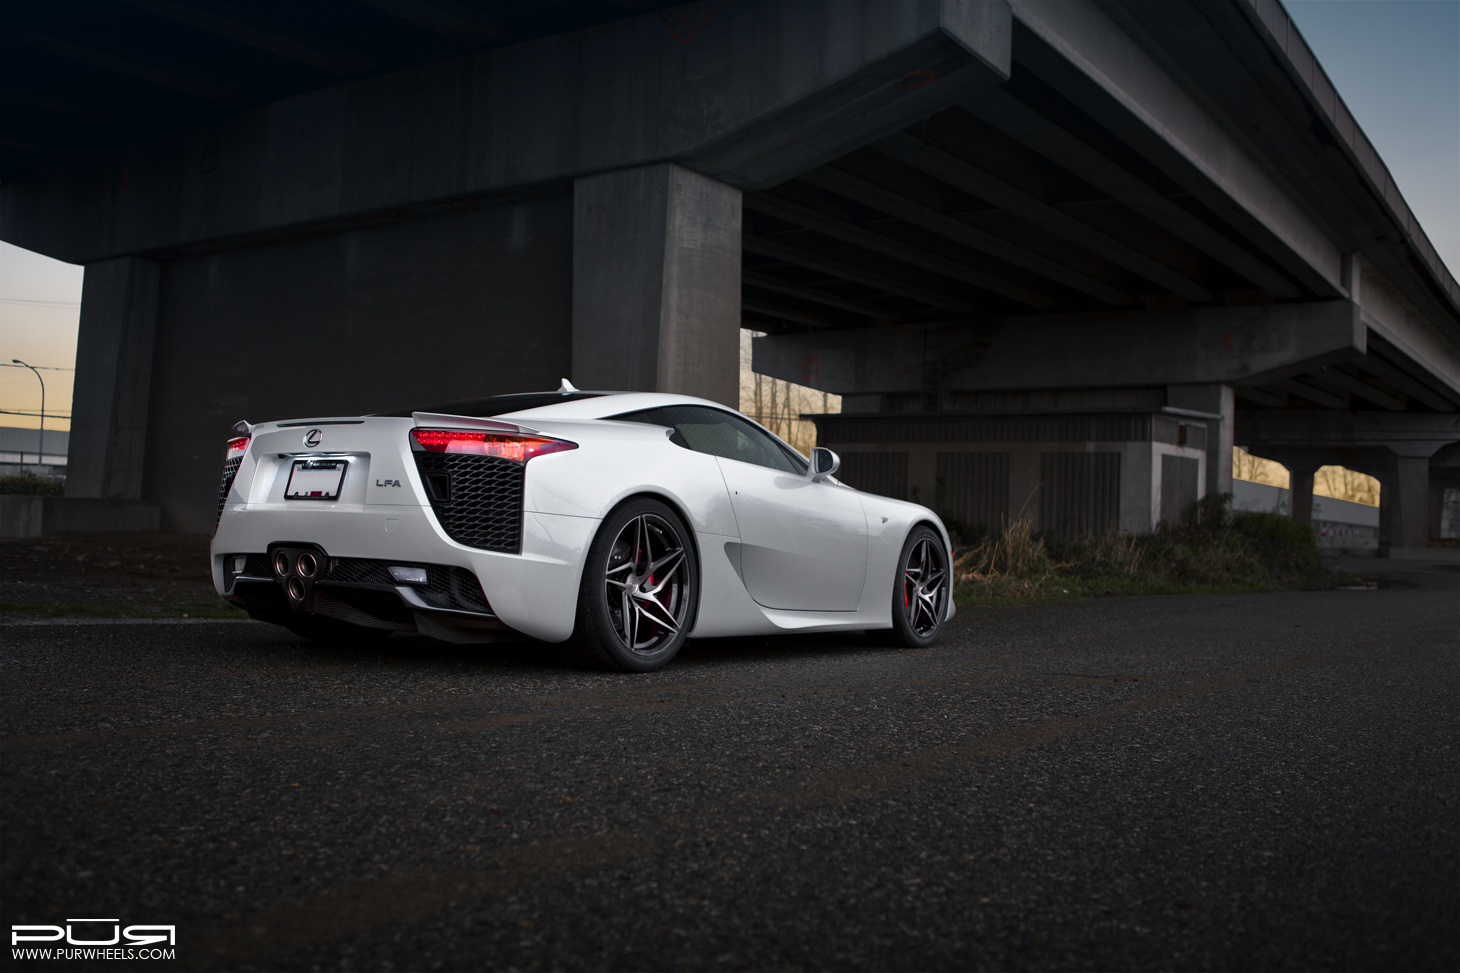 lexus lfa black rims. blocking ads can be devastating to sites you love and result in people losing their jobs negatively affect the quality of content lexus lfa black rims